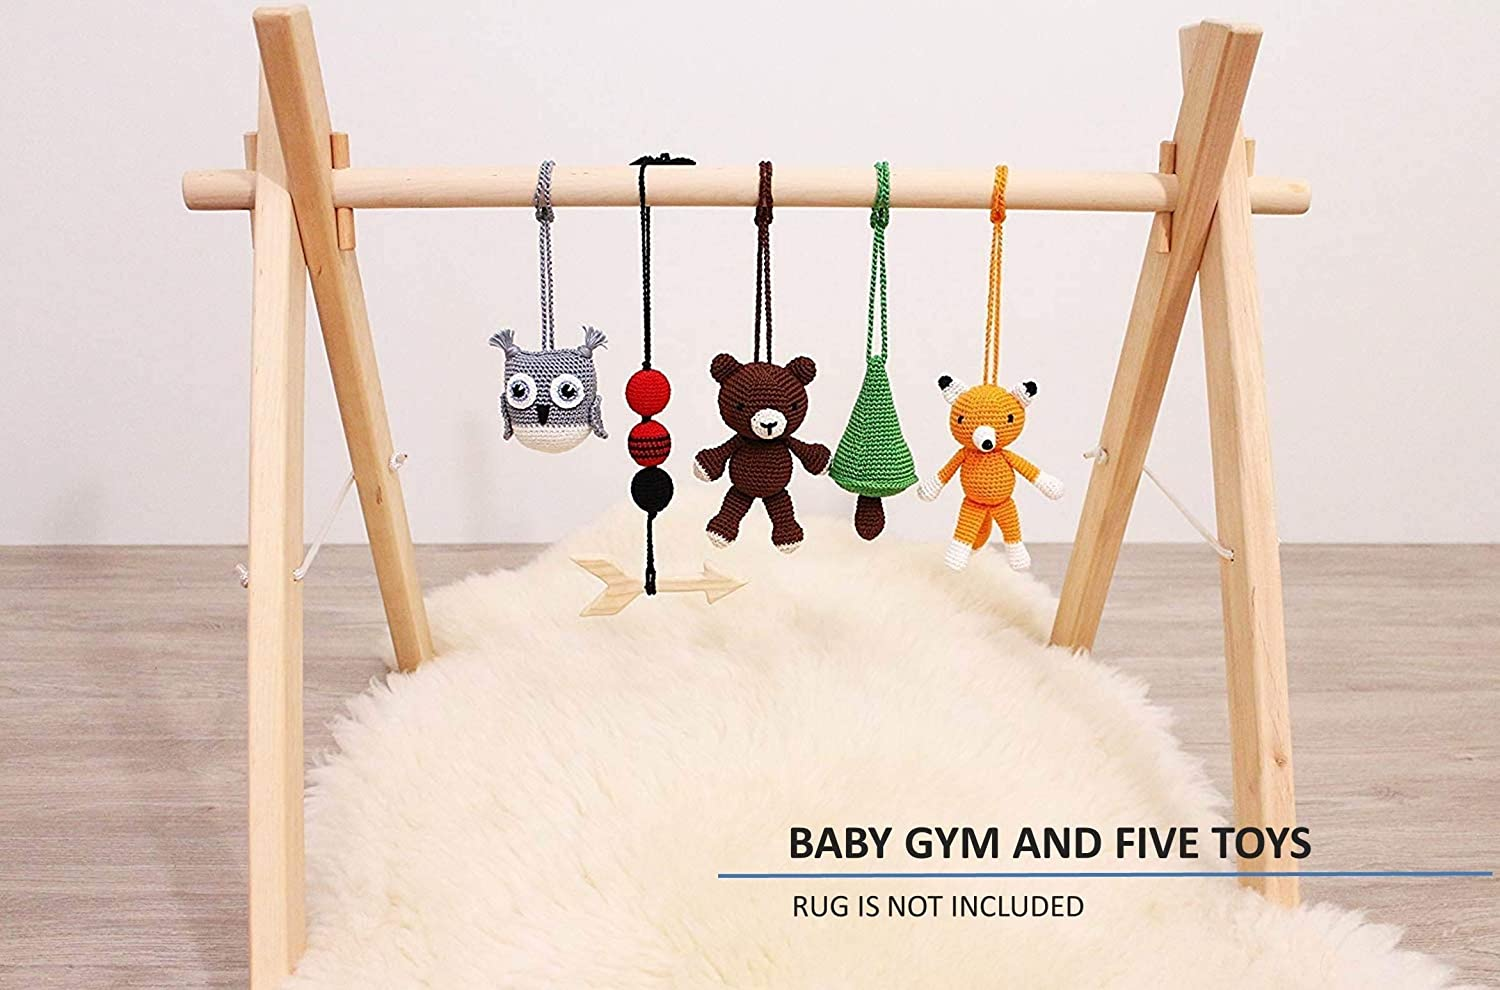 Lumberjack baby play gym wood with 5 mobiles: Bear, fox, owl, pine tree, wooden arrow. Woodland. Hunting. Camp. Outdoor adventure. Infant activity center. Handmade. Baby gift